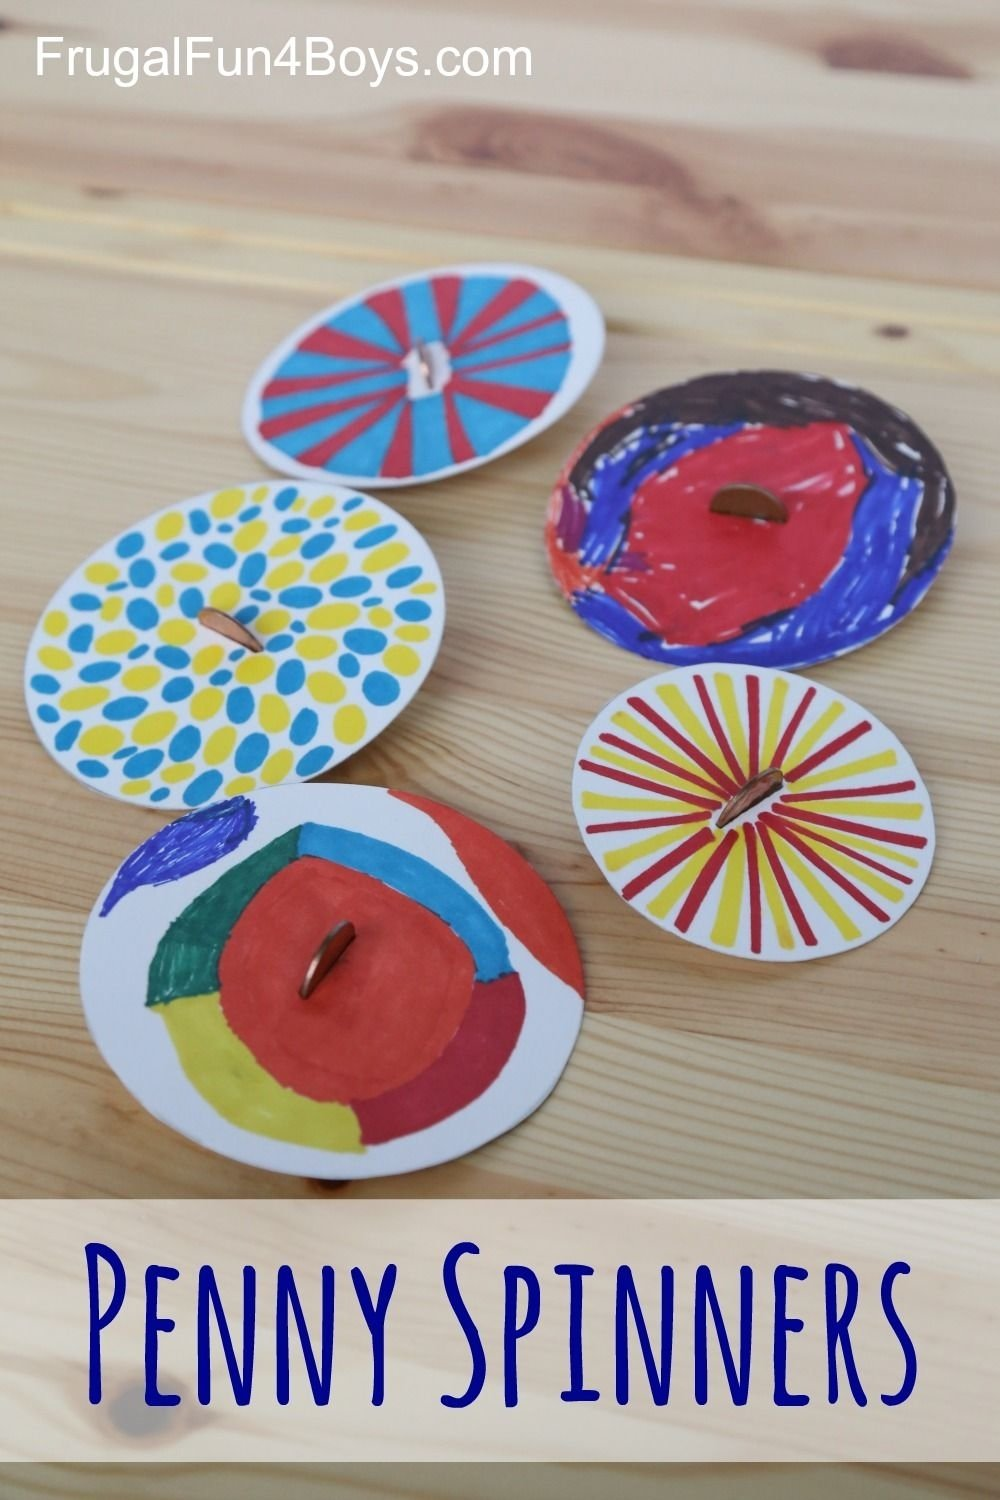 10 Lovable Arts And Crafts Ideas For Summer penny spinners toy tops that kids can make spinner toy craft